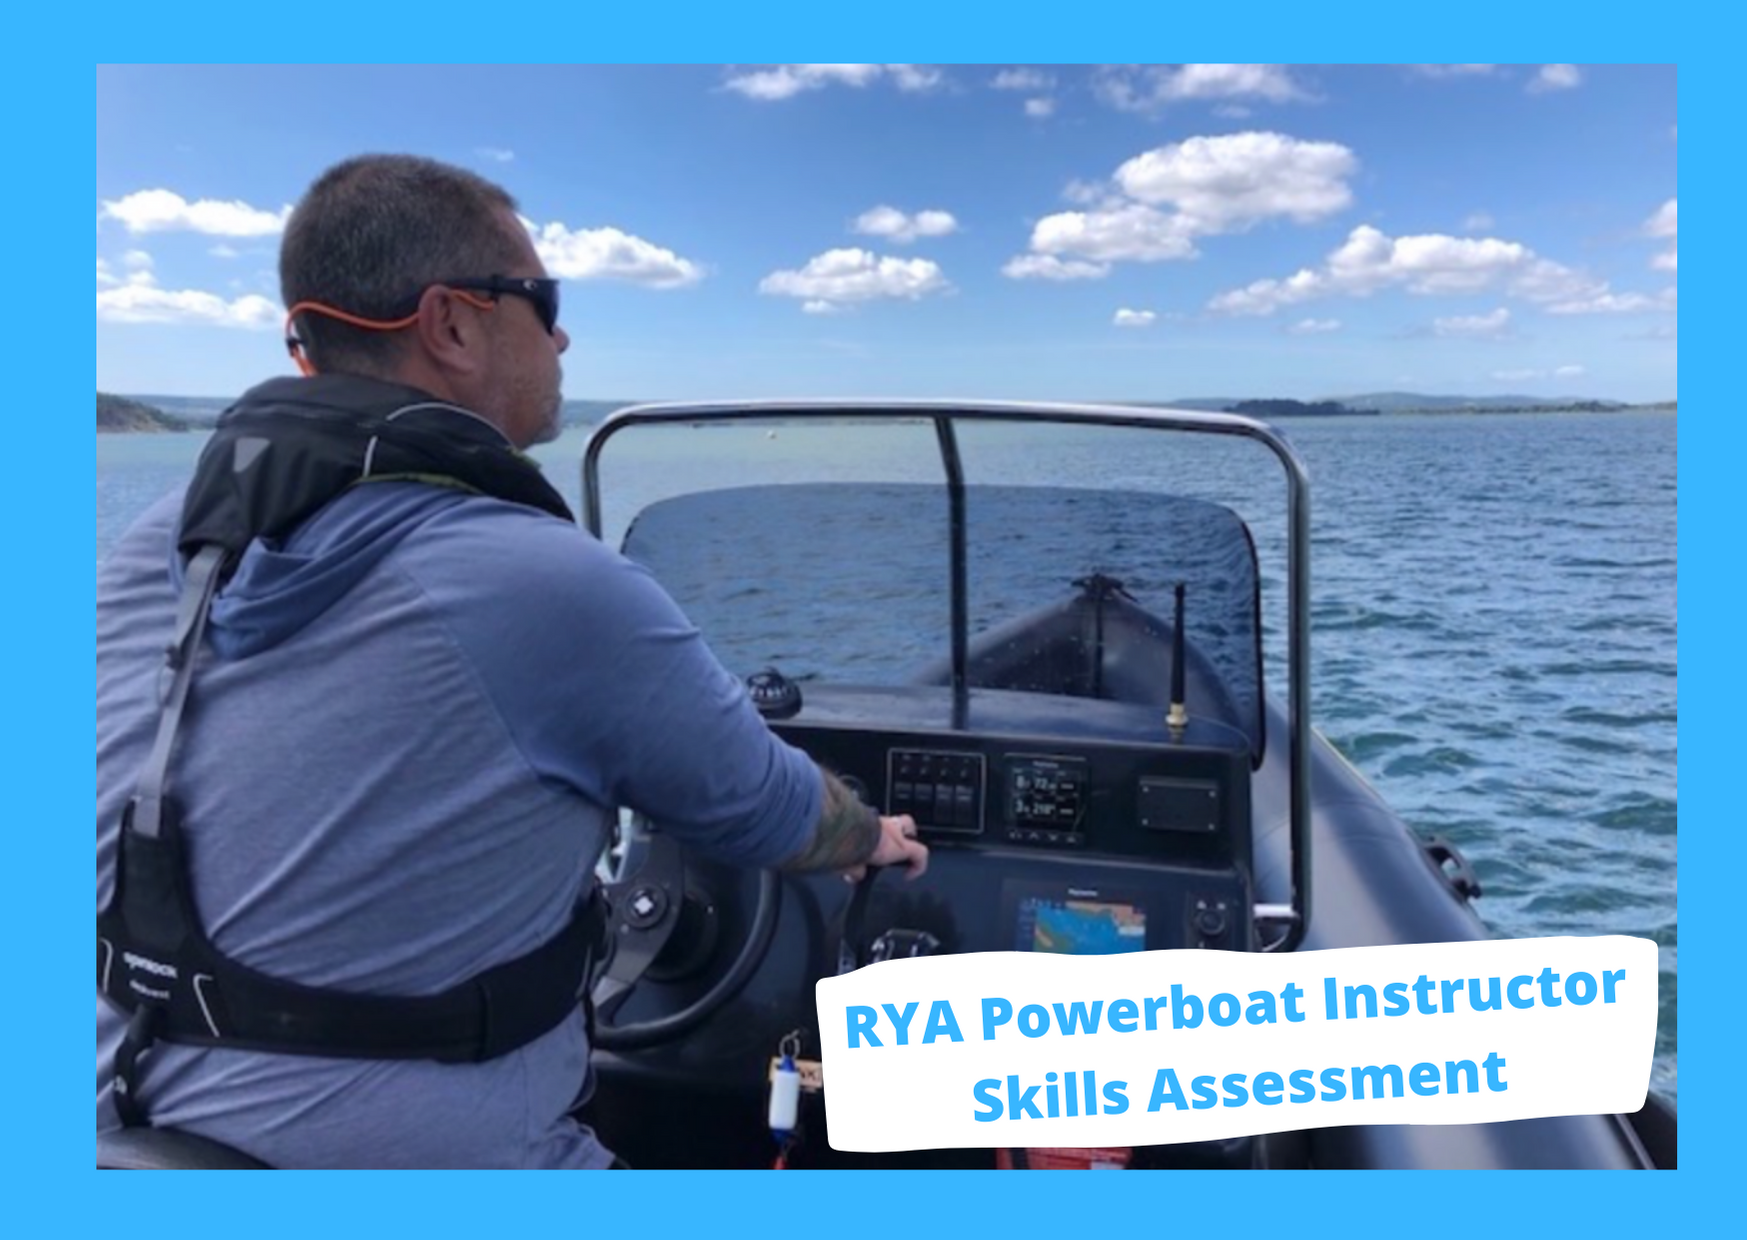 rya powerboat instructor skills assessment